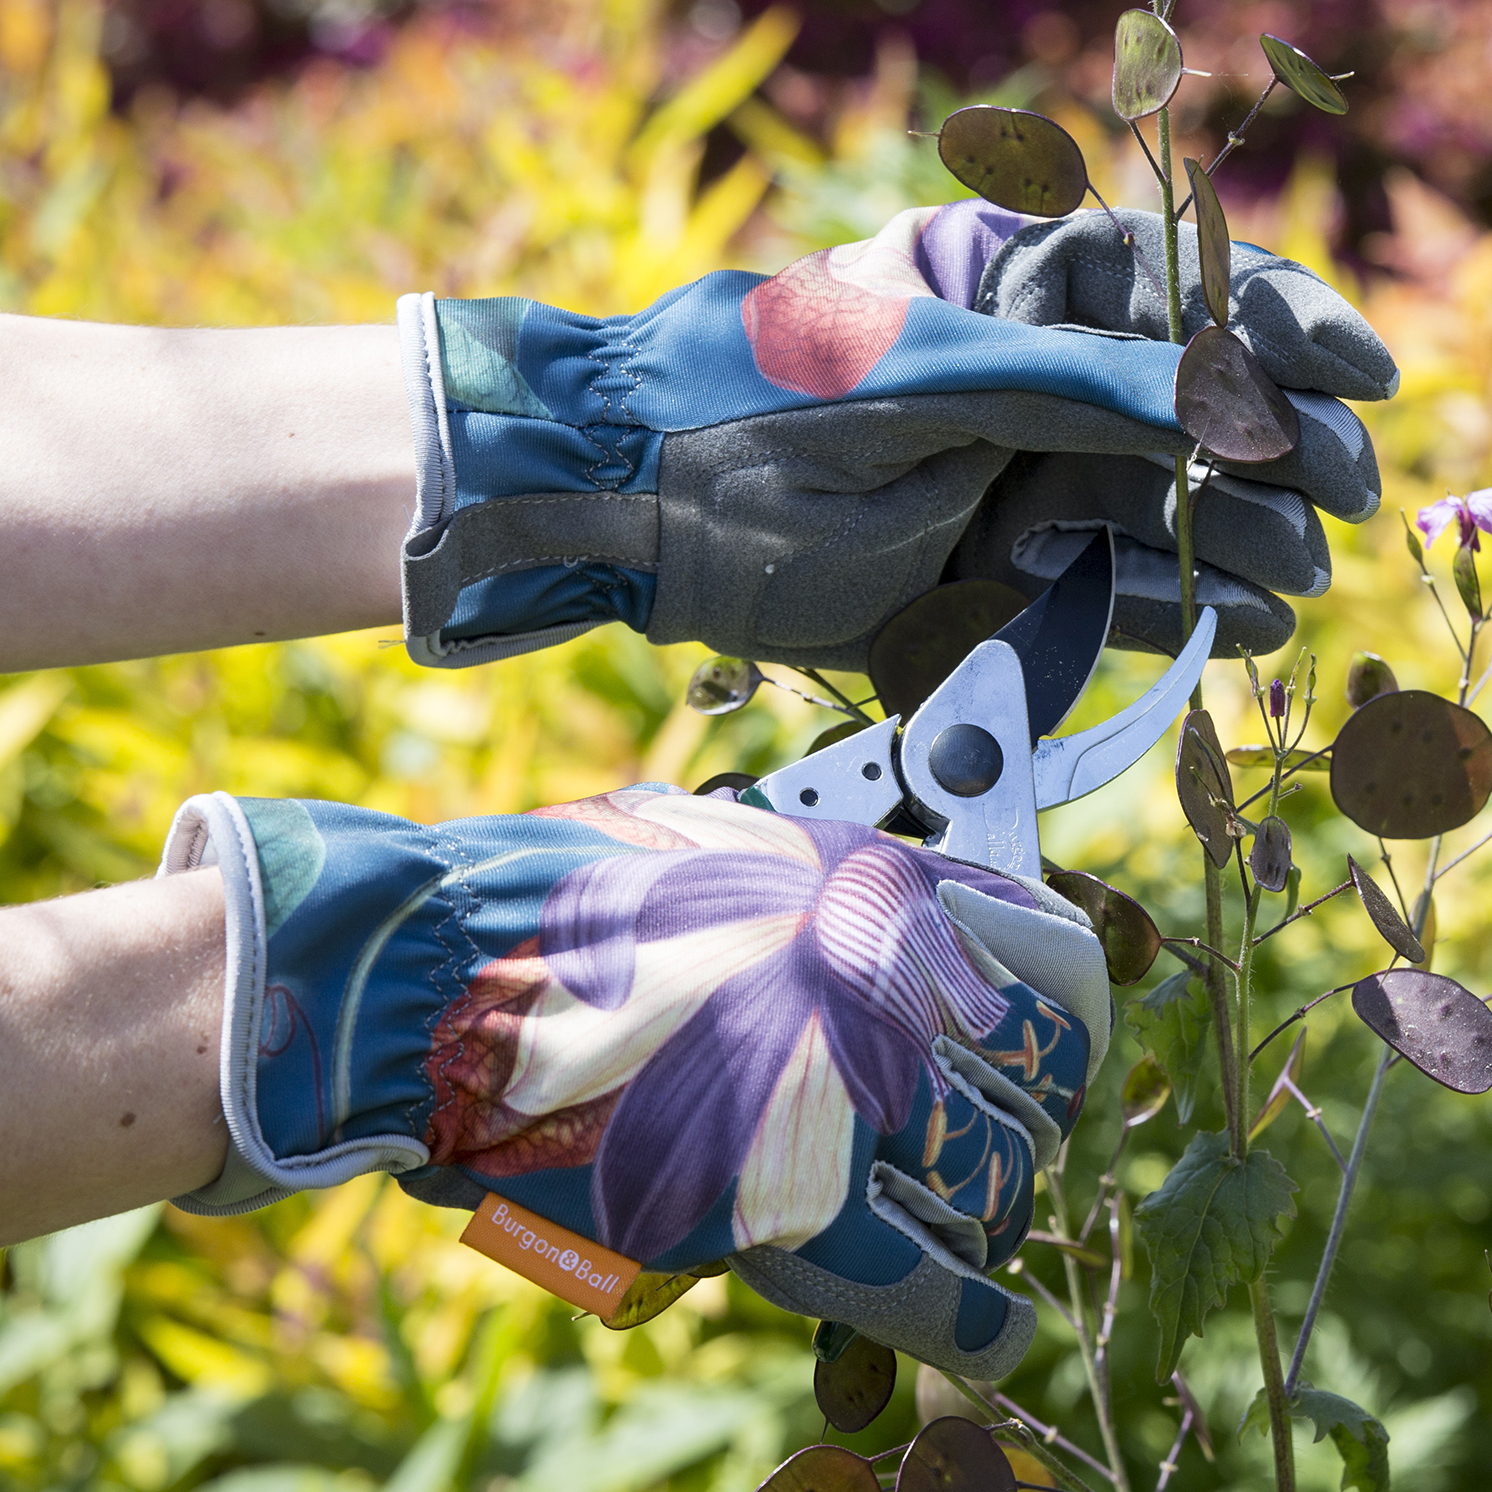 Burgon & Ball – RHS Passiflora Gloves with RHS Passiflora Wooden Plant Labels